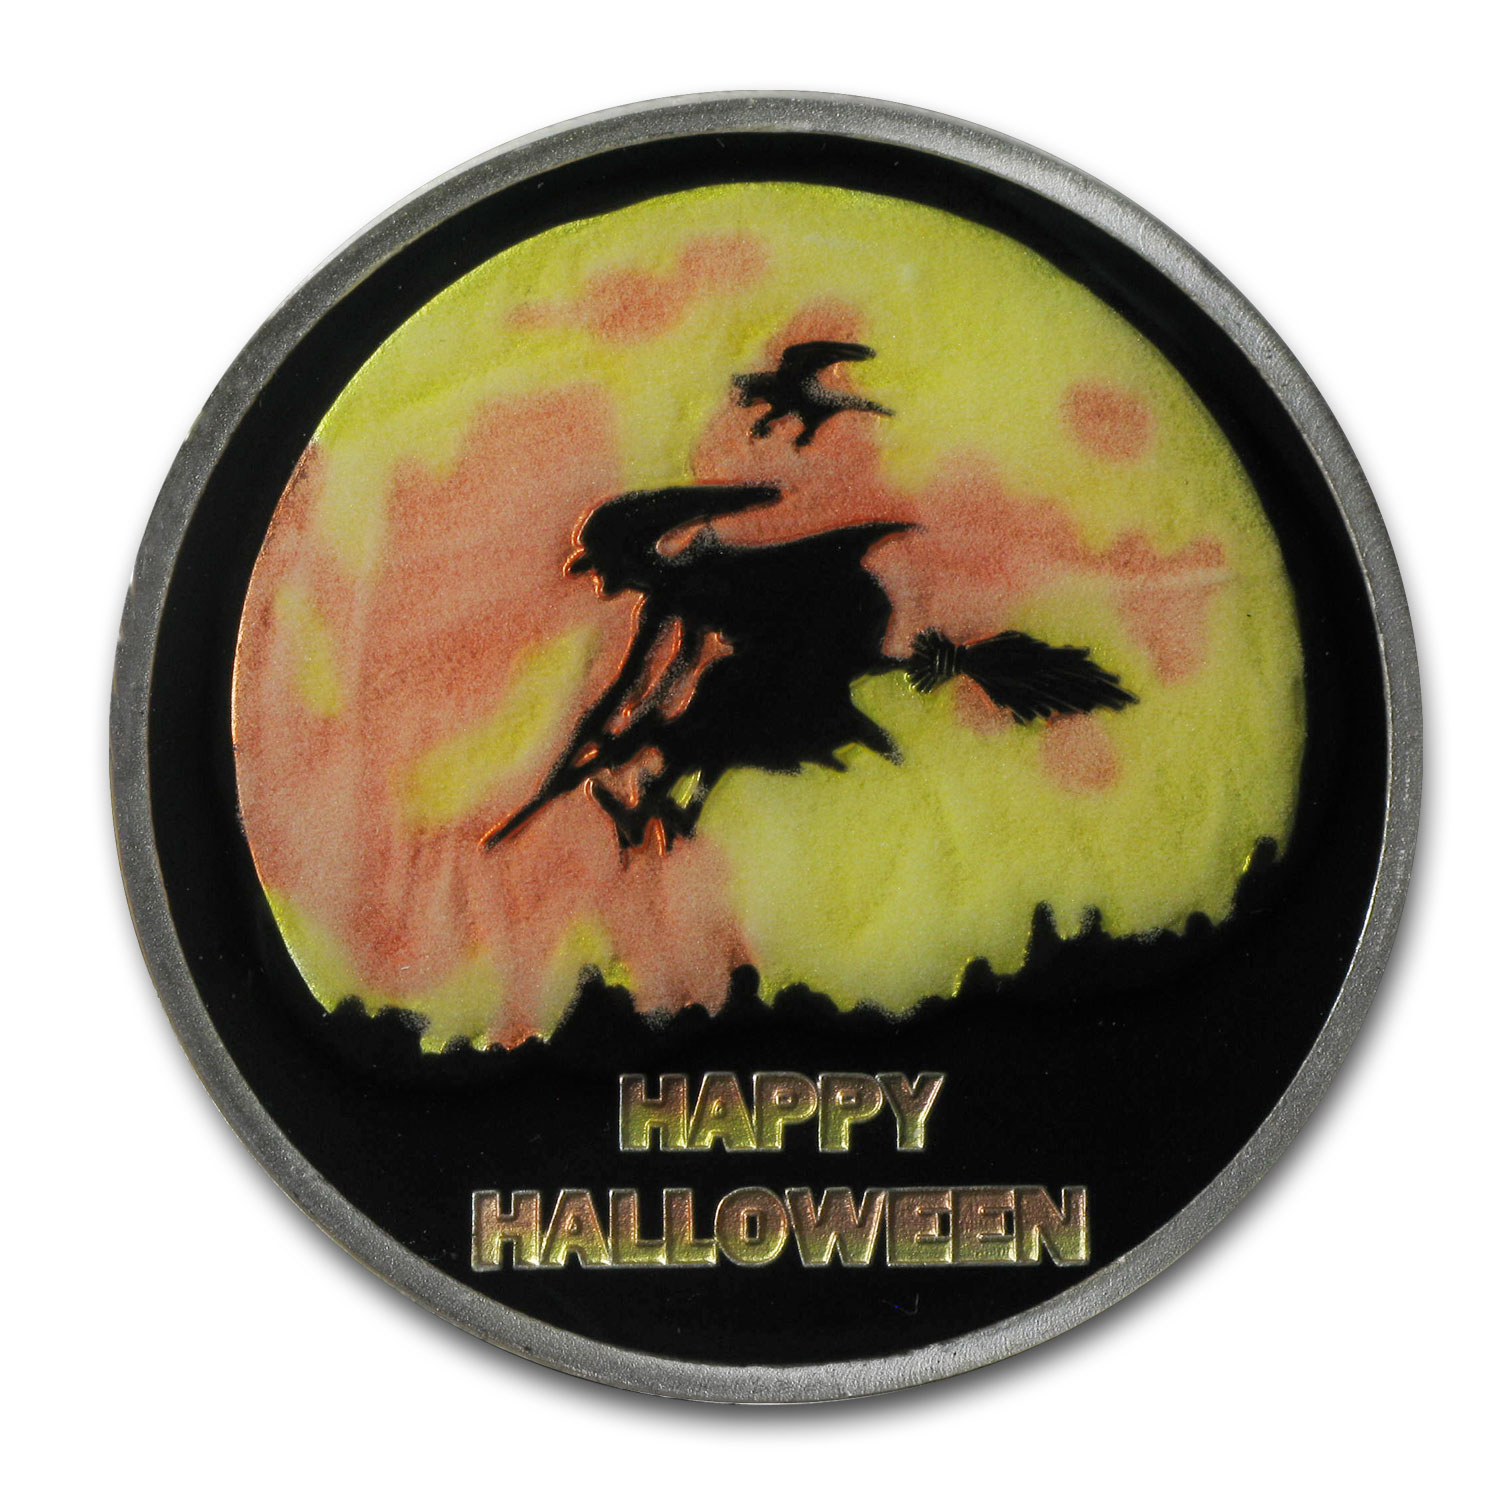 1 oz Silver Round - Glow-in-the-Dark Halloween (Pouch & Capsule)